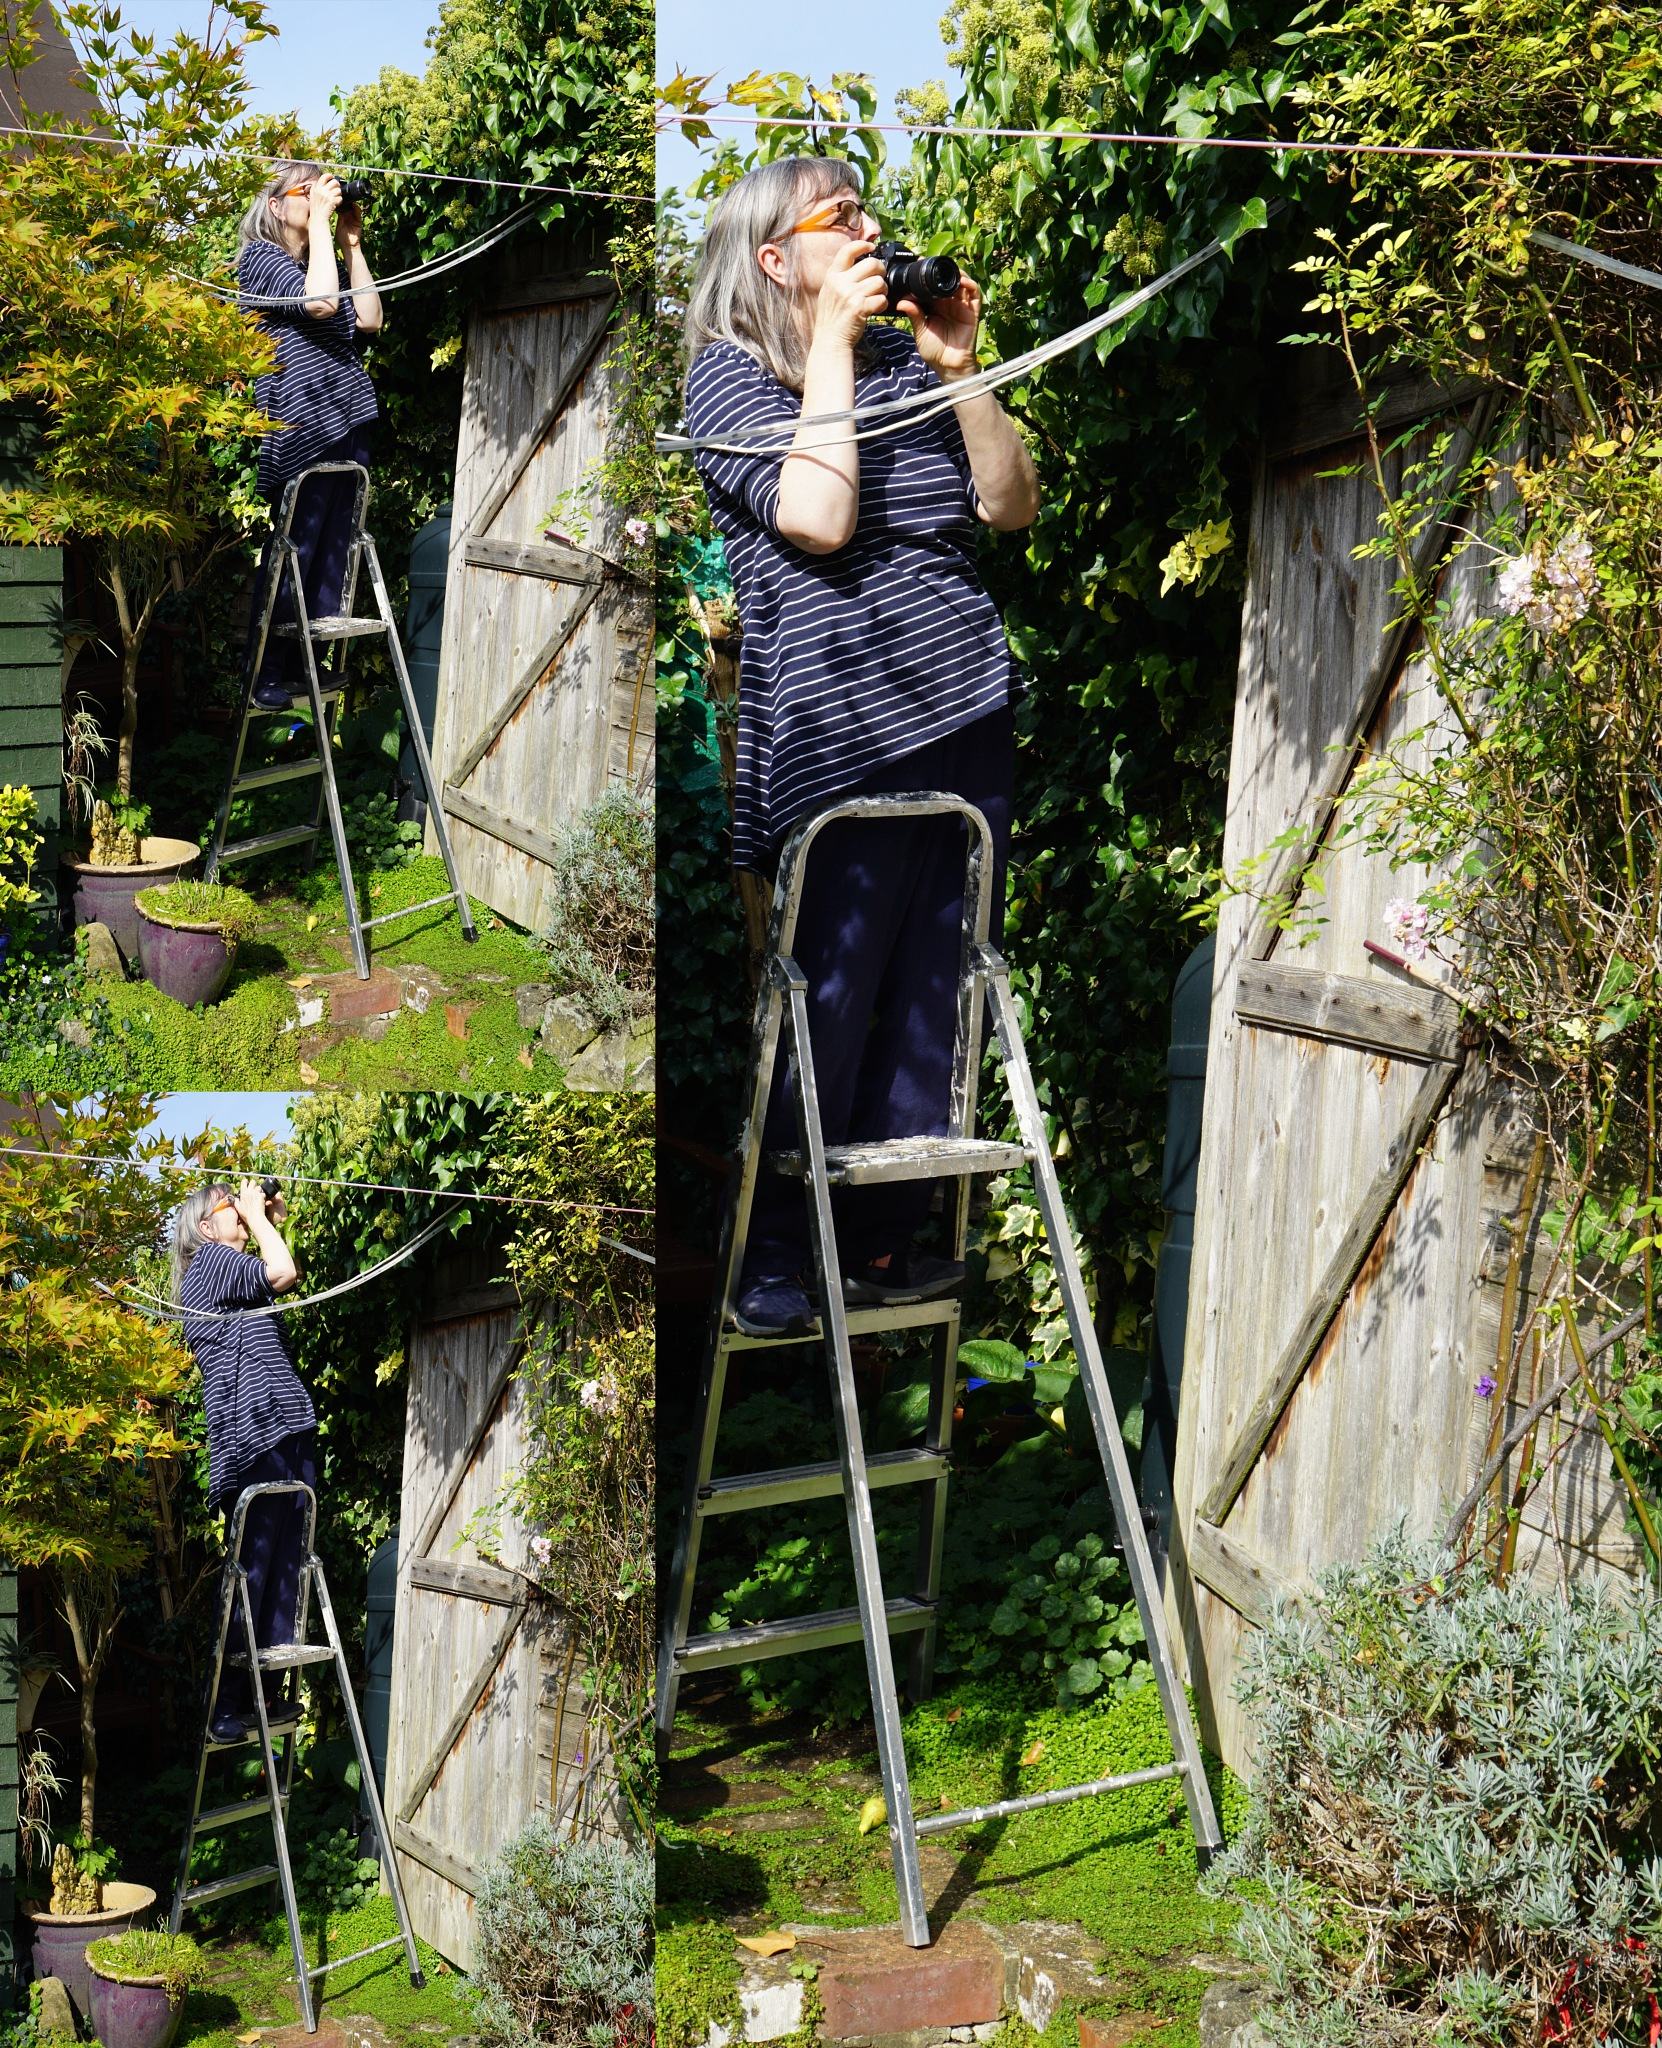 Step-Ladder Photography by Gillian James